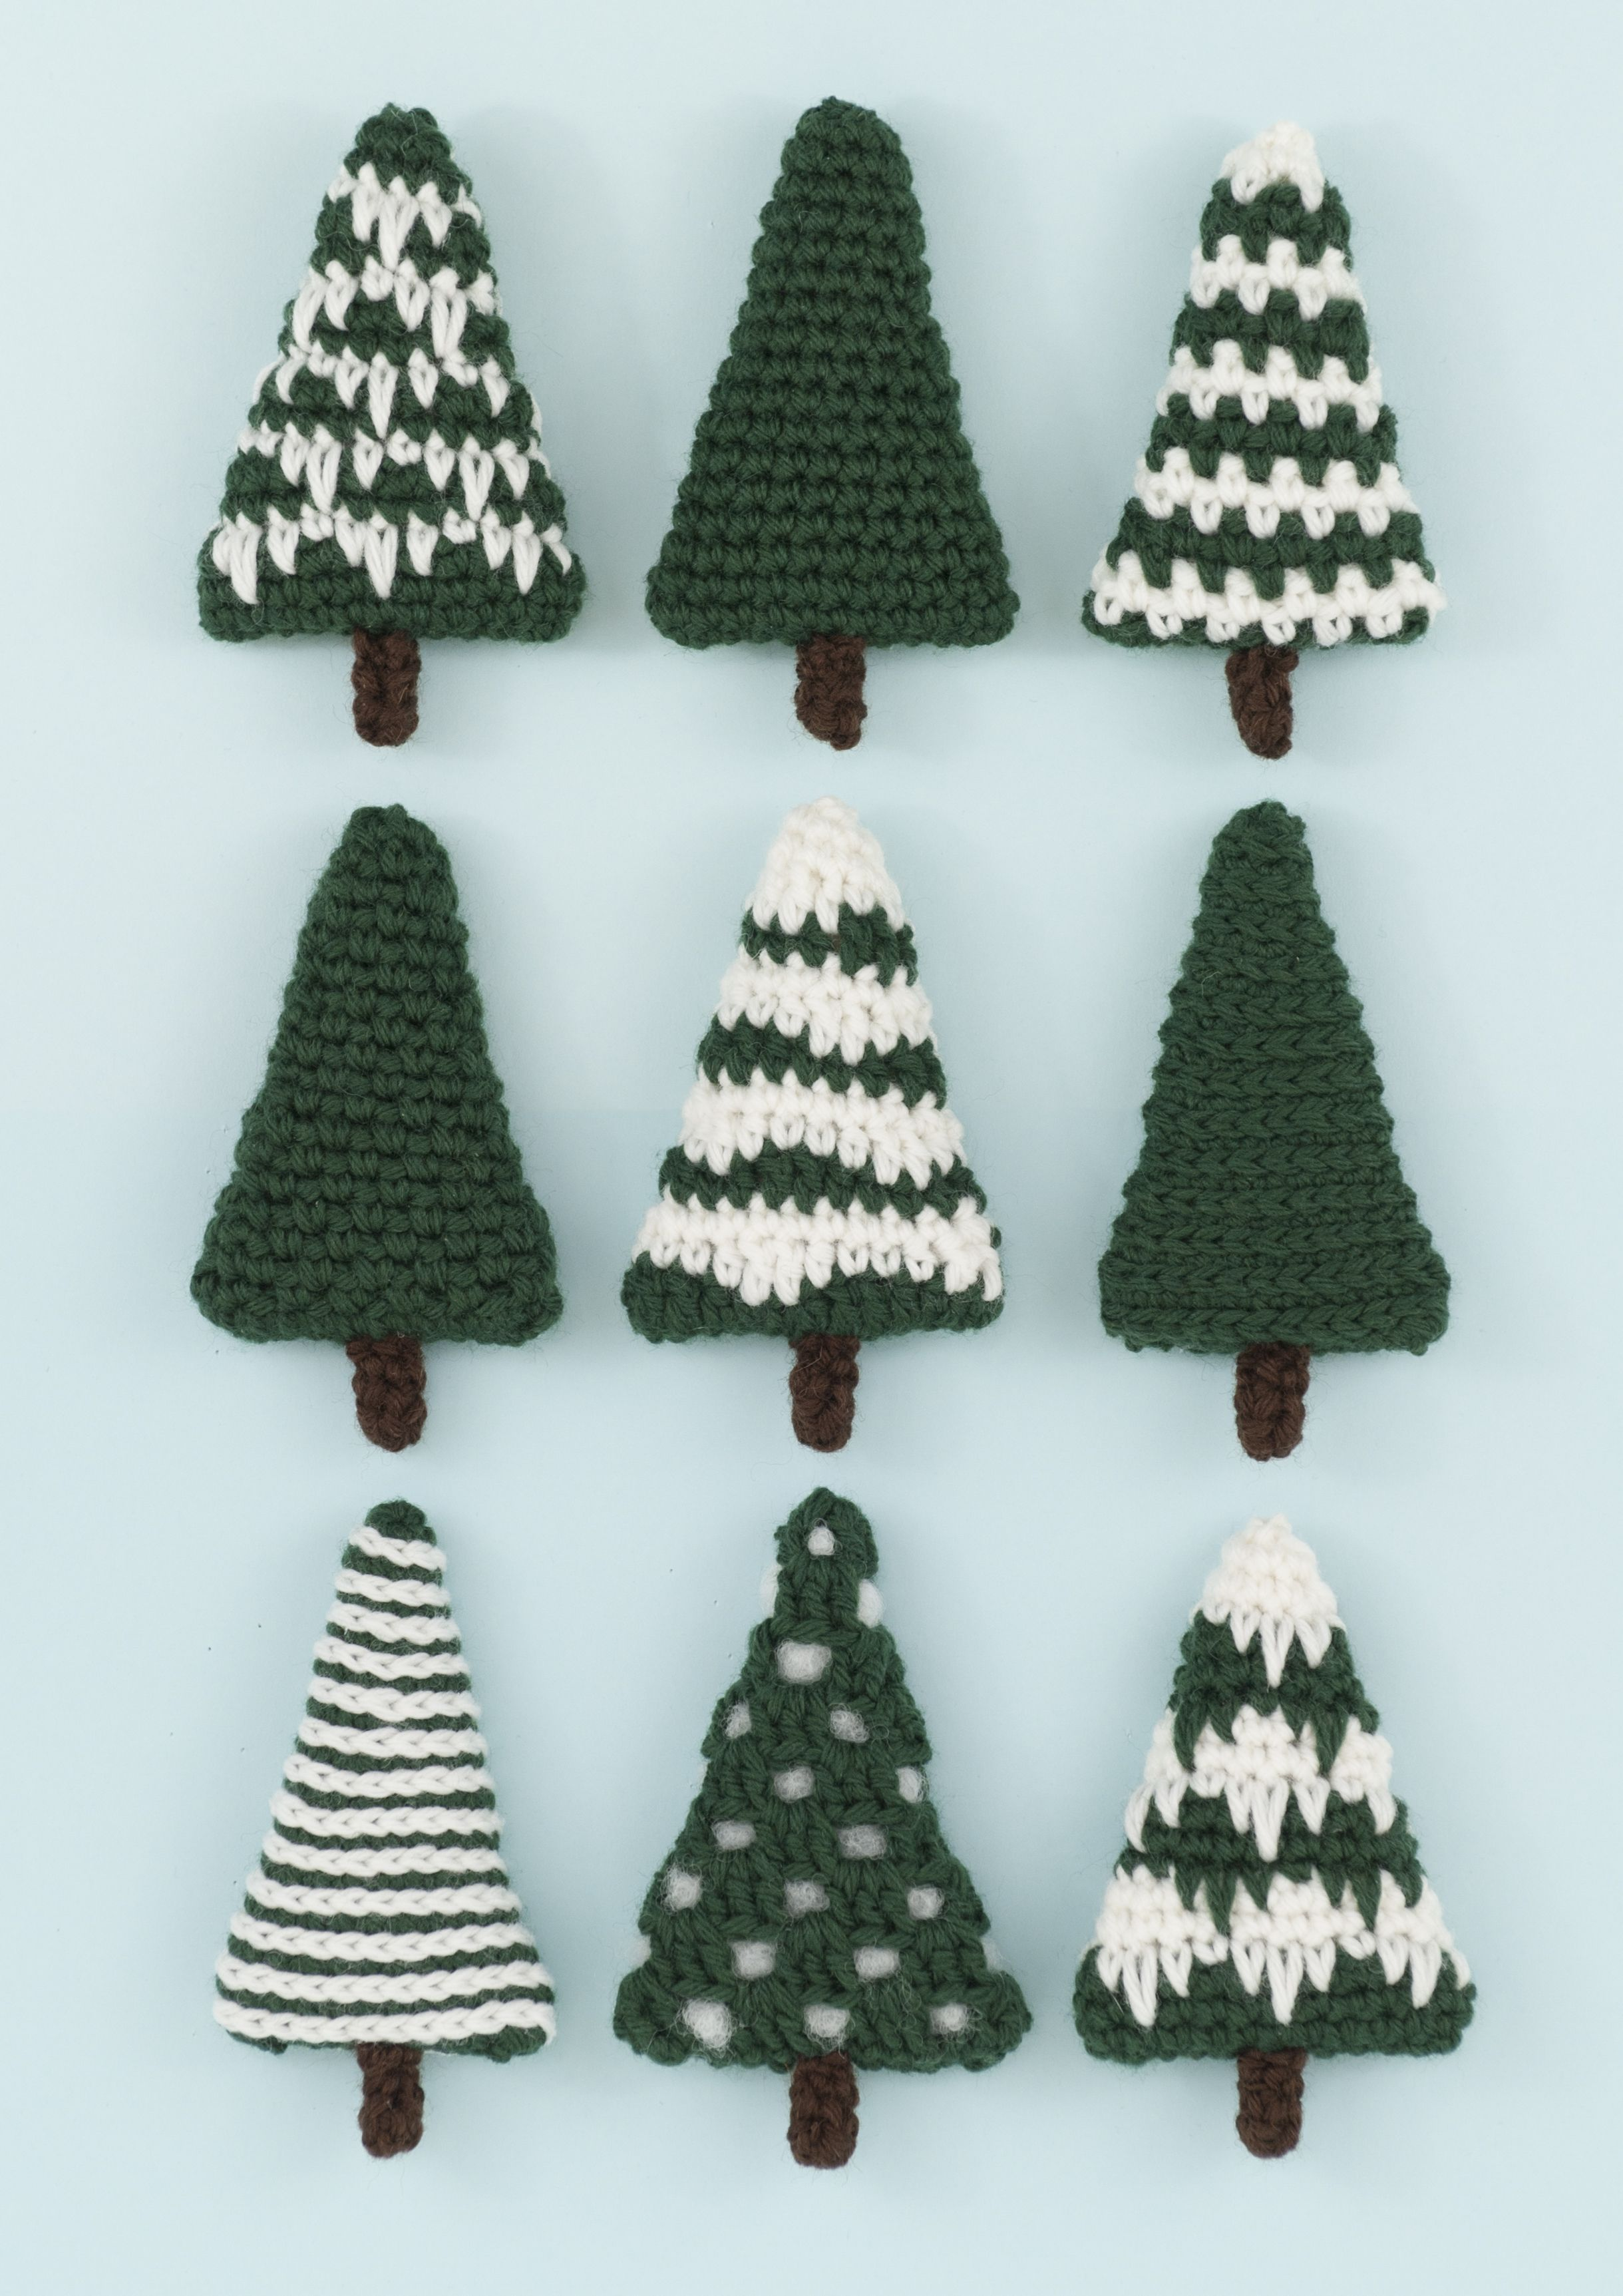 Christmas trees crochet pattern crochet pinterest christmas christmas trees crochet pattern bankloansurffo Image collections